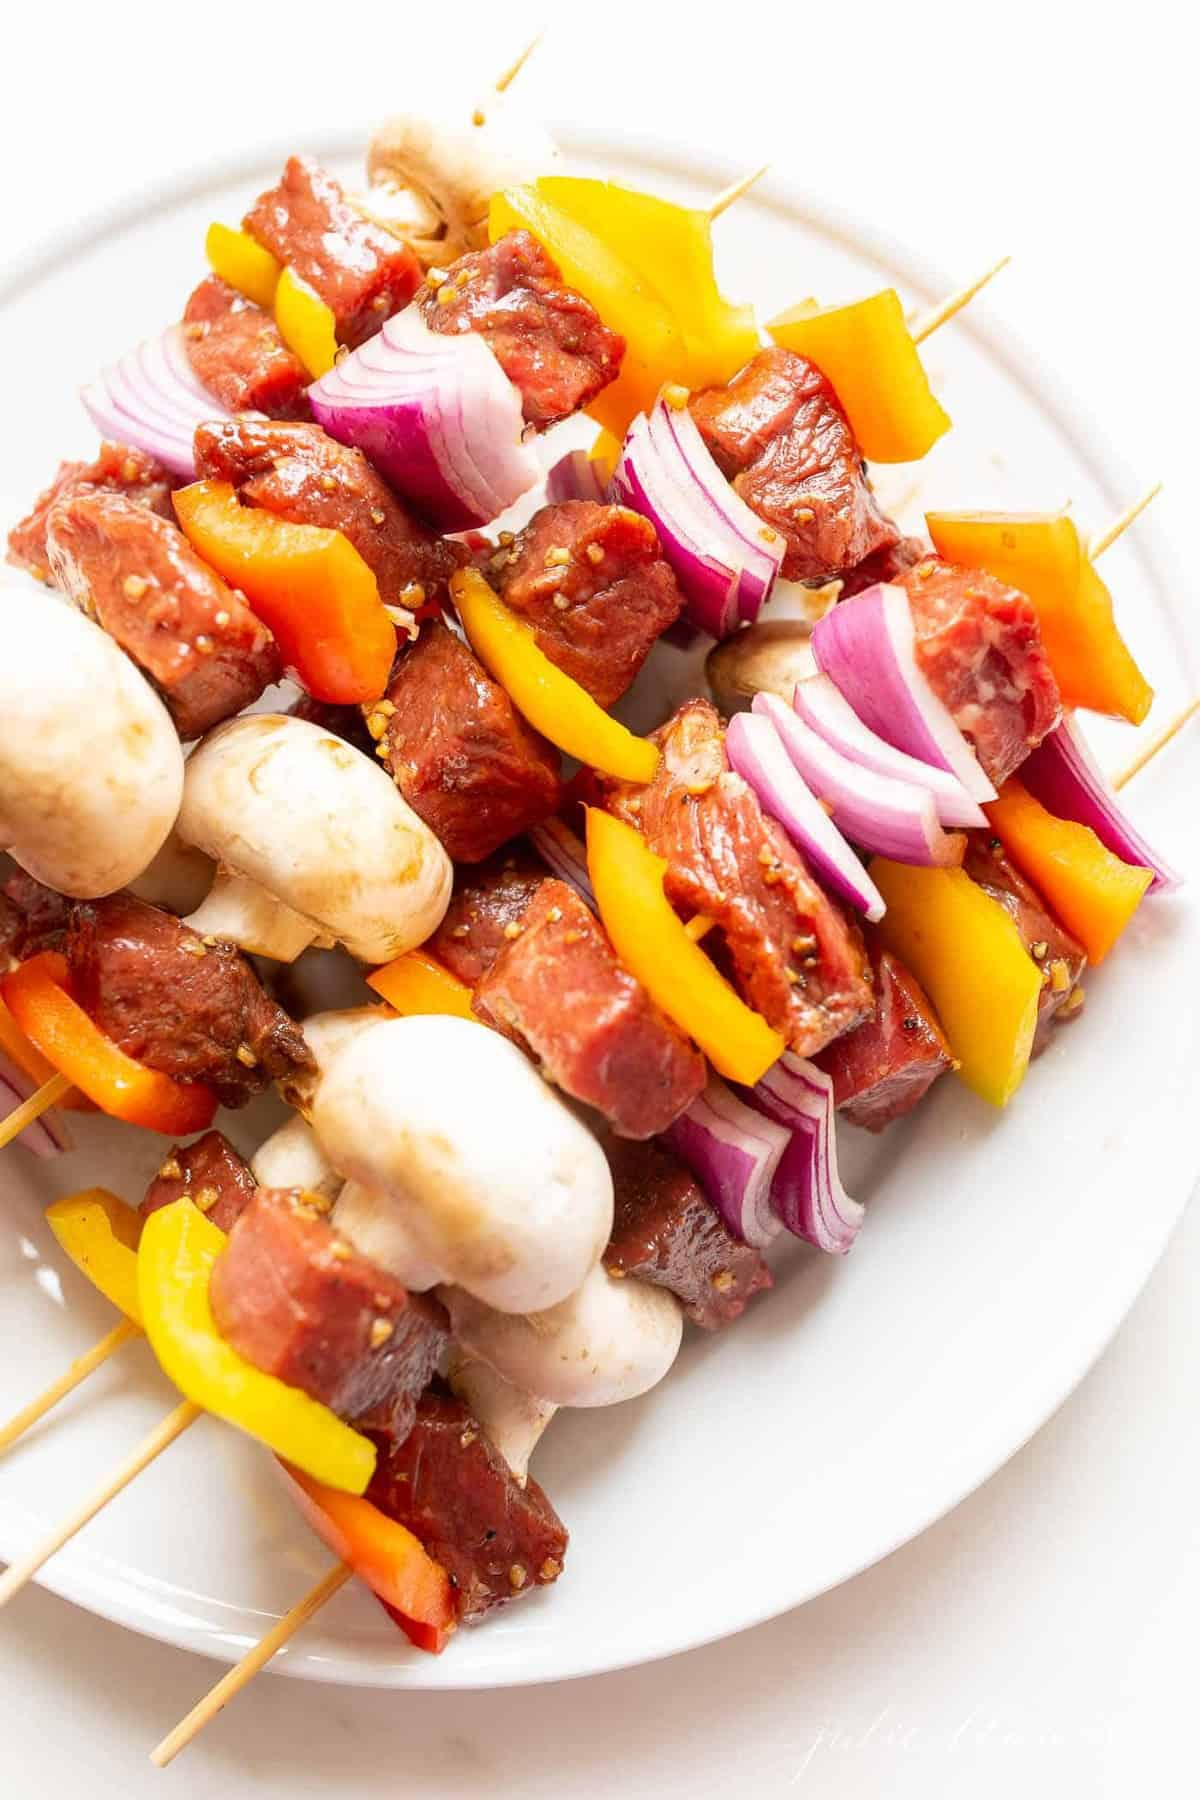 A platter full of skewers with veggies and raw steak for kabobs.